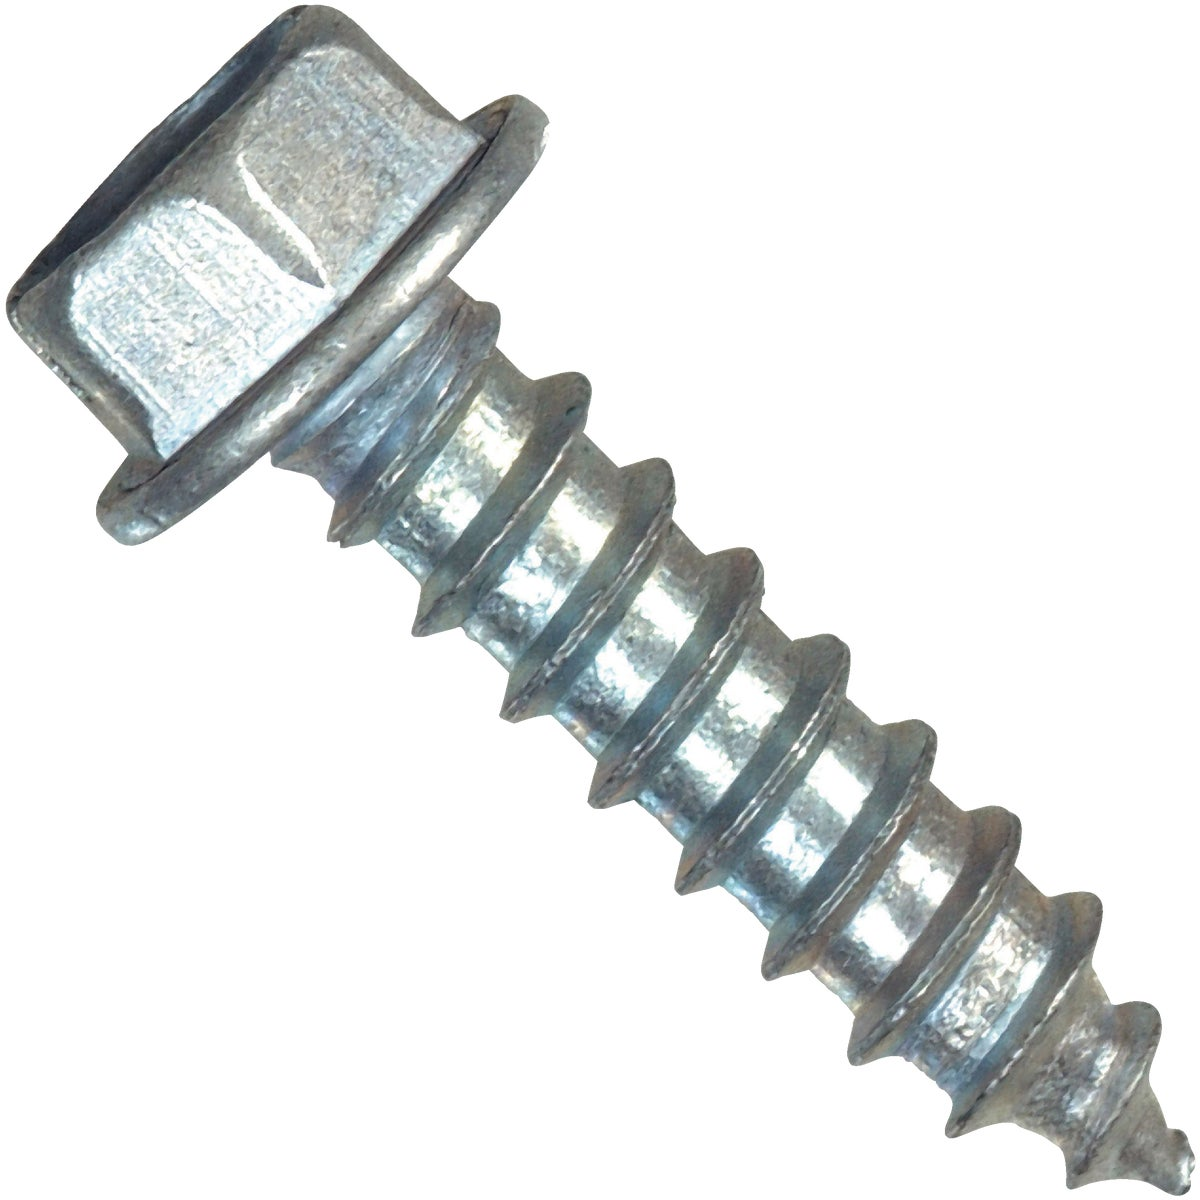 10X1/2 HWH SHT MTL SCREW - 70292 by Hillman Fastener